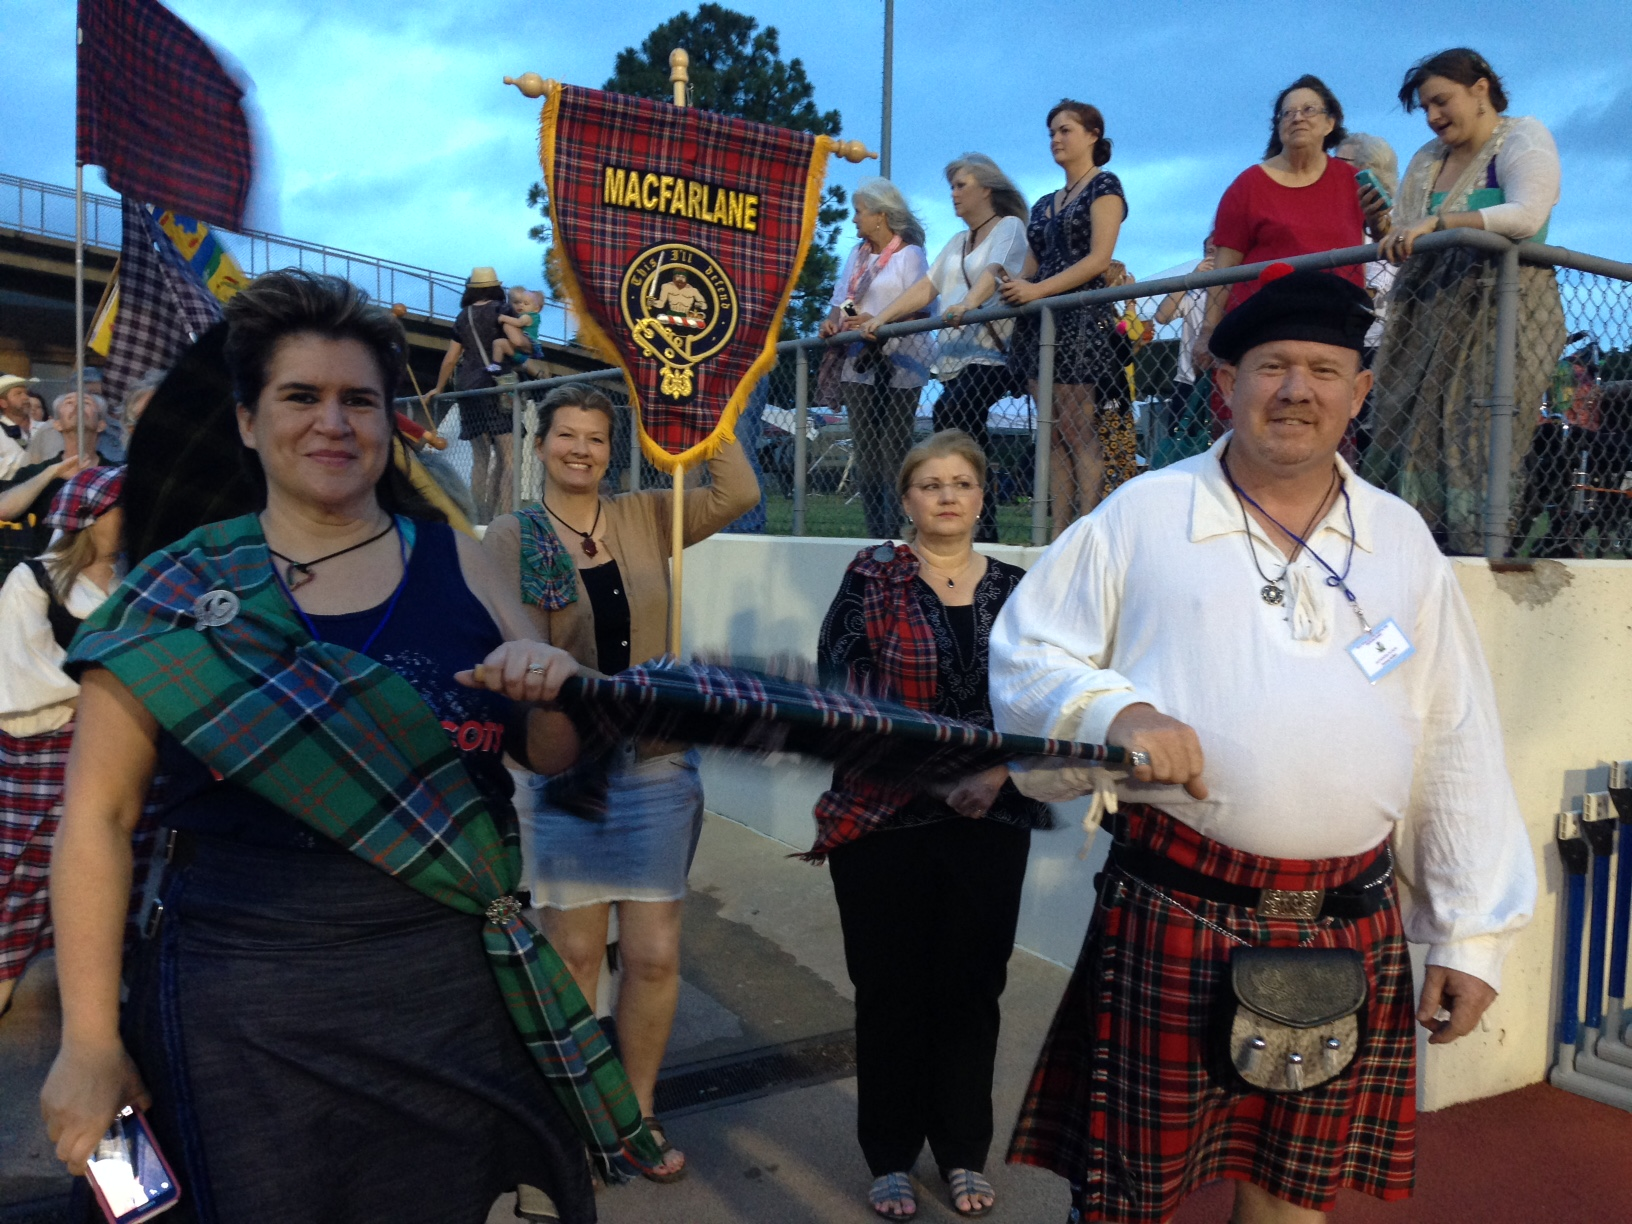 2015_Clan_parade_in_Arlington_TX.jpg